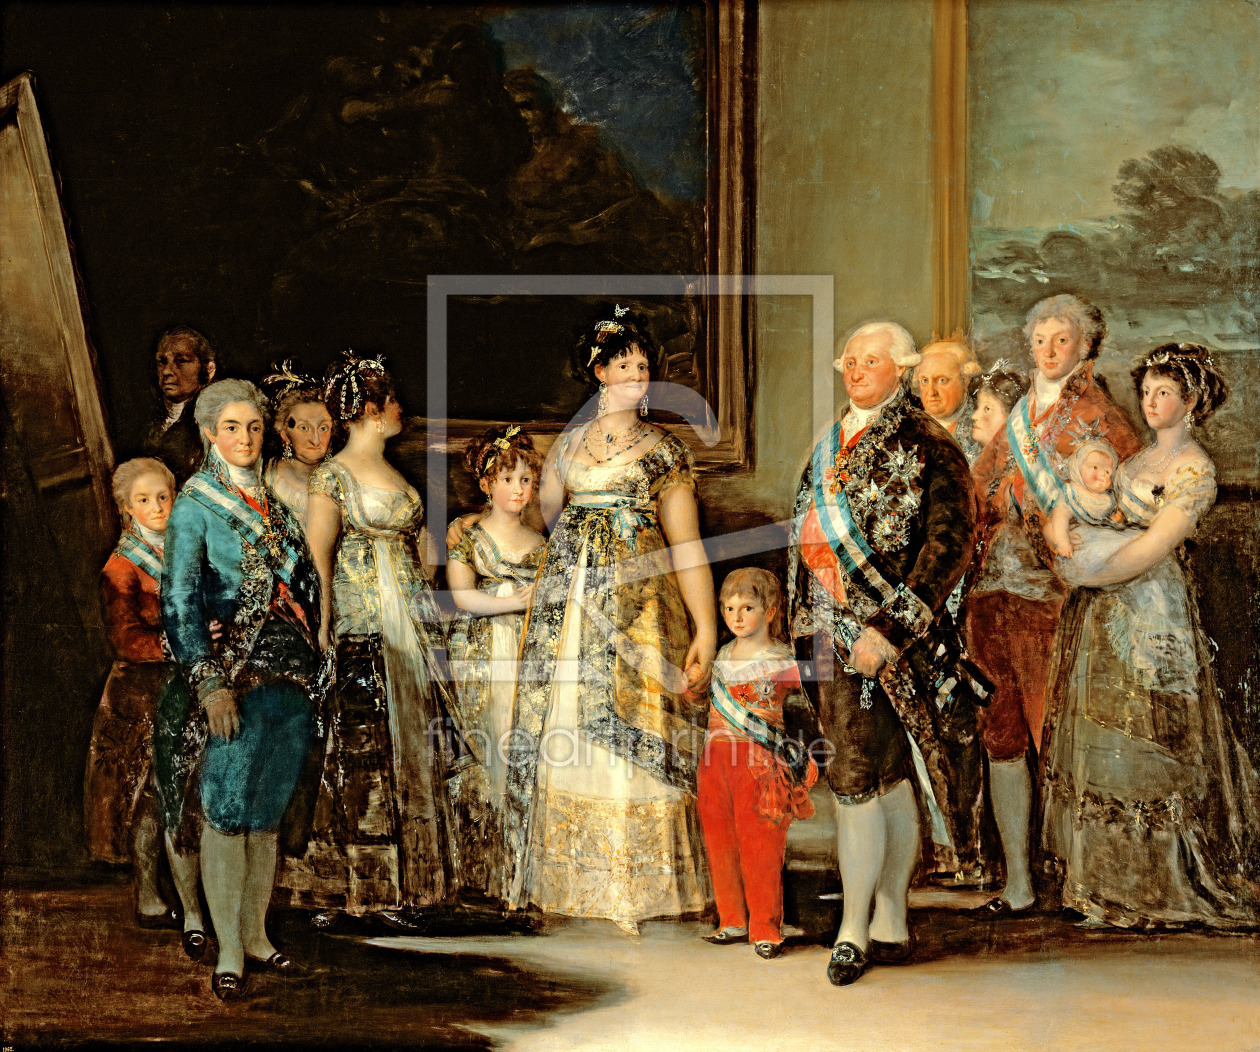 Bild-Nr.: 31000559 The King and Queen of Spain, Charles IV and Maria Luisa, with their family, 1800 erstellt von Goya, Francisco de